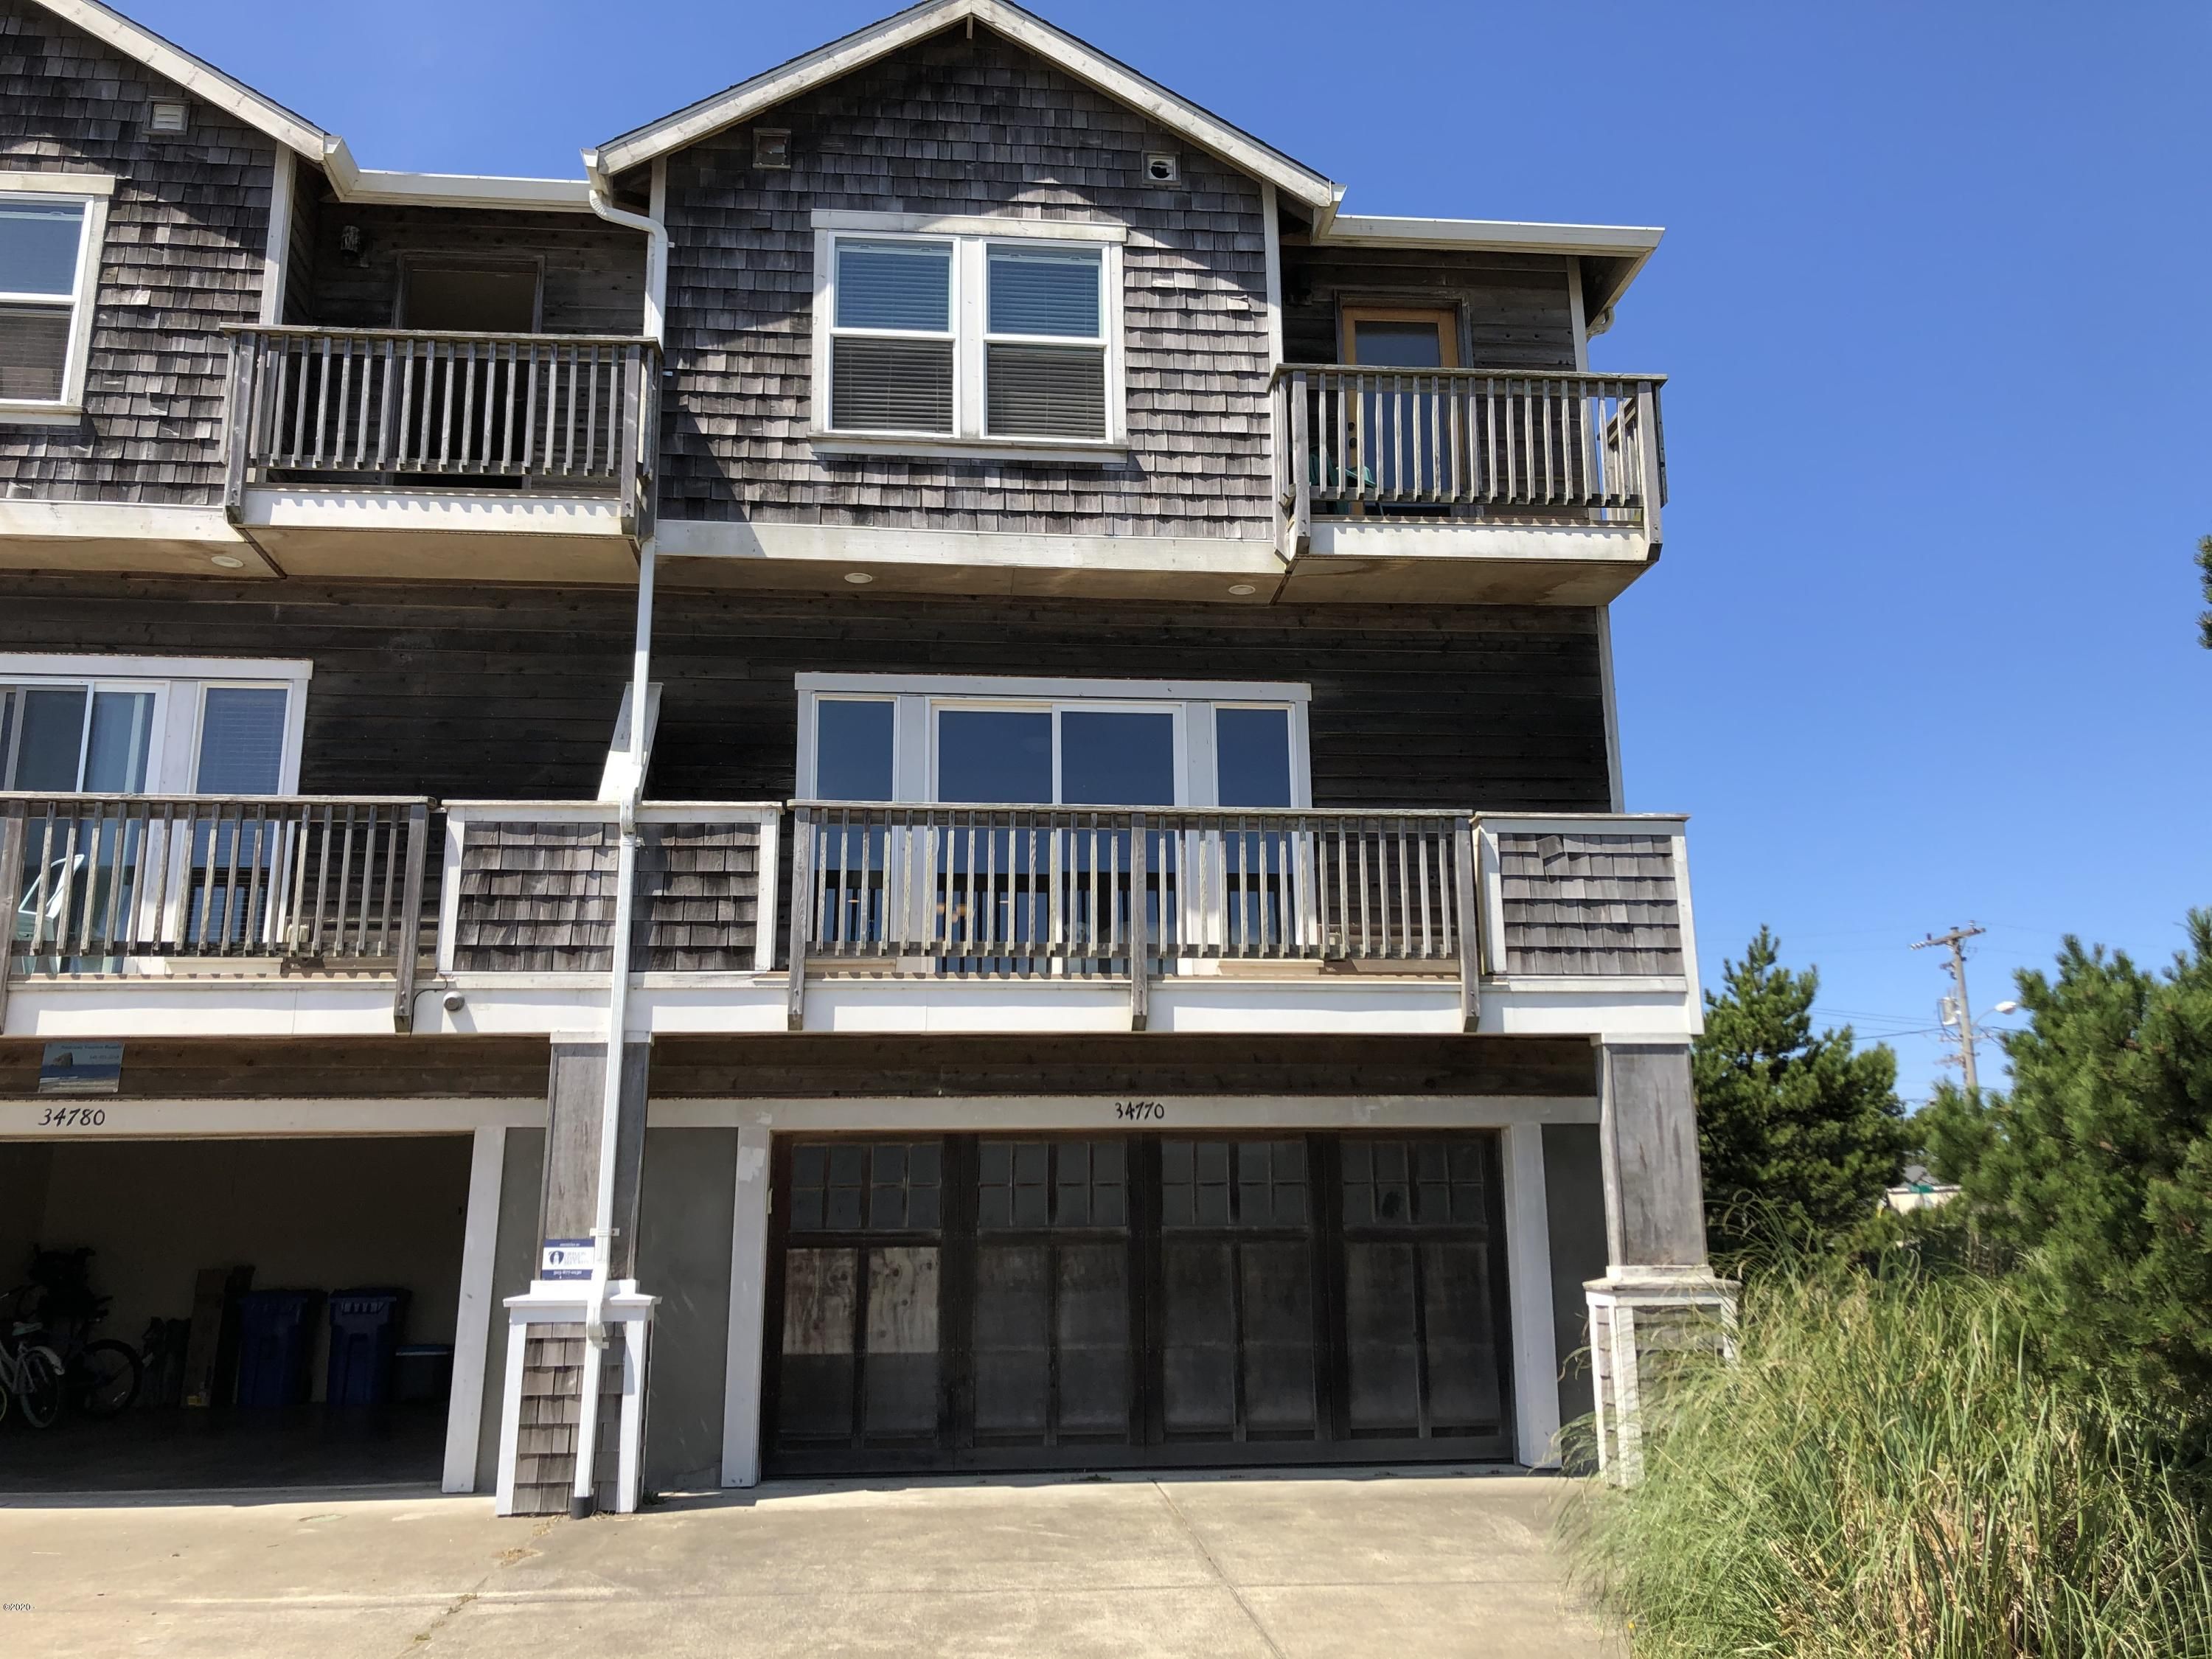 34770 Nestucca Blvd, Pacific City, OR 97135 - Nestucca Townhome